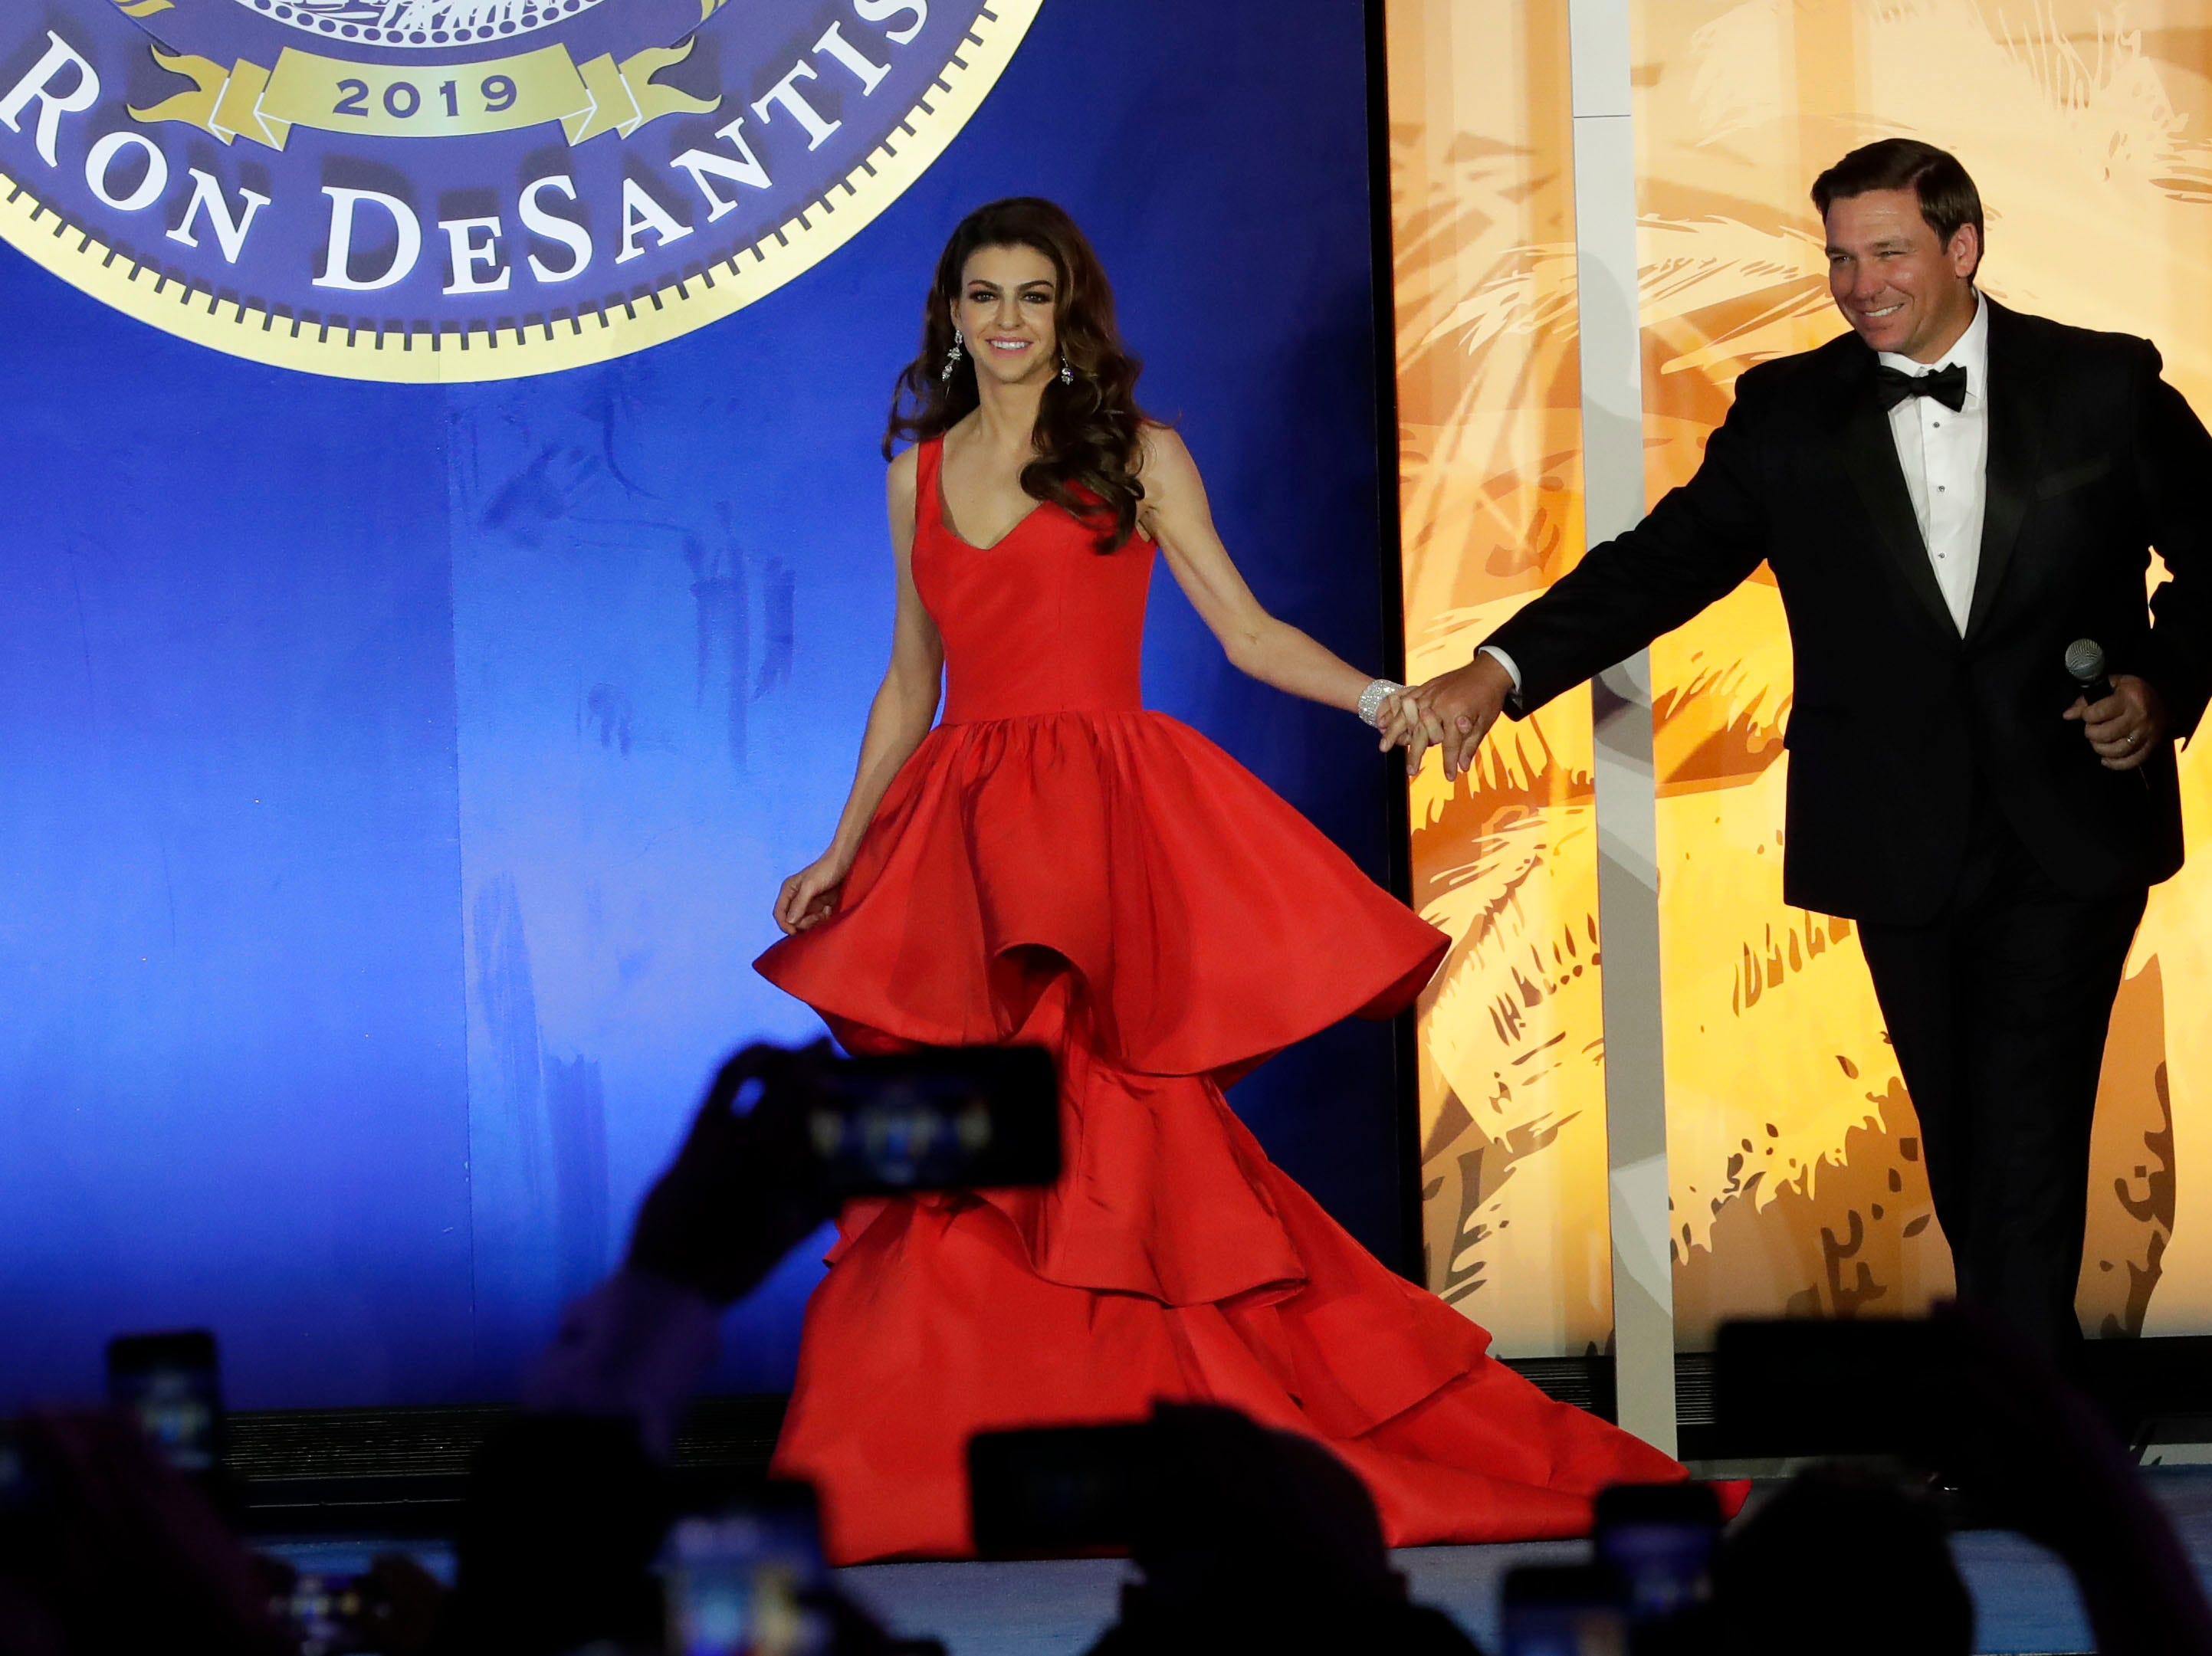 Hundreds of guests from all over Florida attend Florida's 46th Governor's Inaugural Ball at the Tucker Civic Center, Tuesday, Jan. 8, 2019. First lady Casey DeSantis, left, is escorted on stage by her husband, Gov. Ron DeSantis.